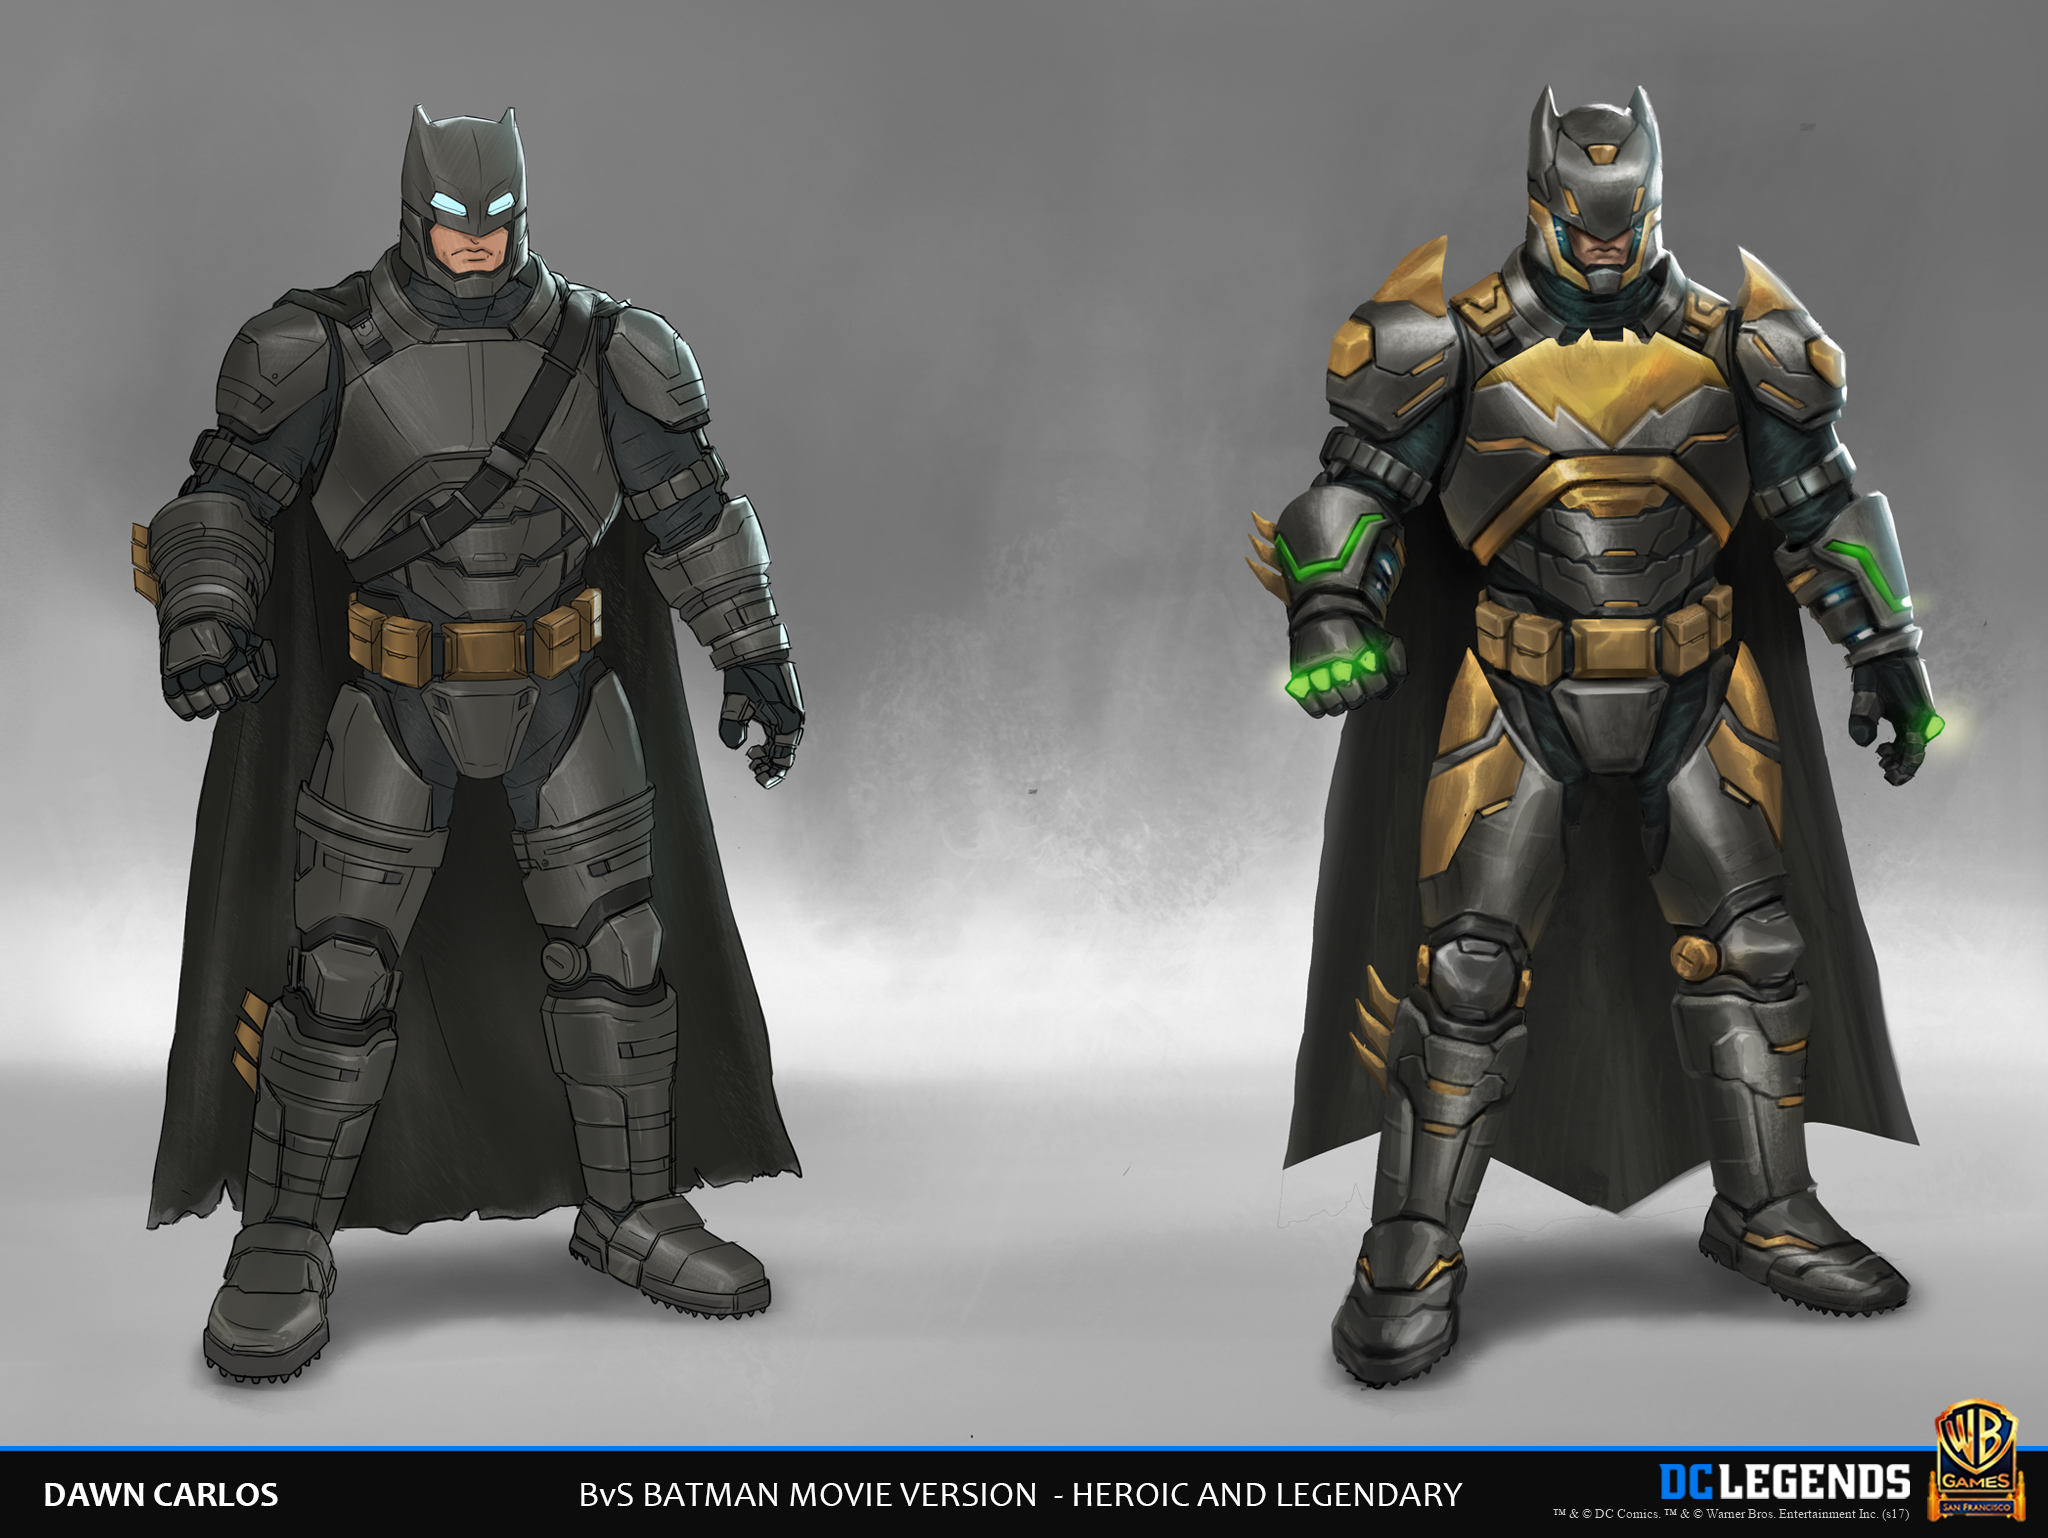 dcLegends_DawnCarlos_submissions_characterConcept_batmanMovie.jpg